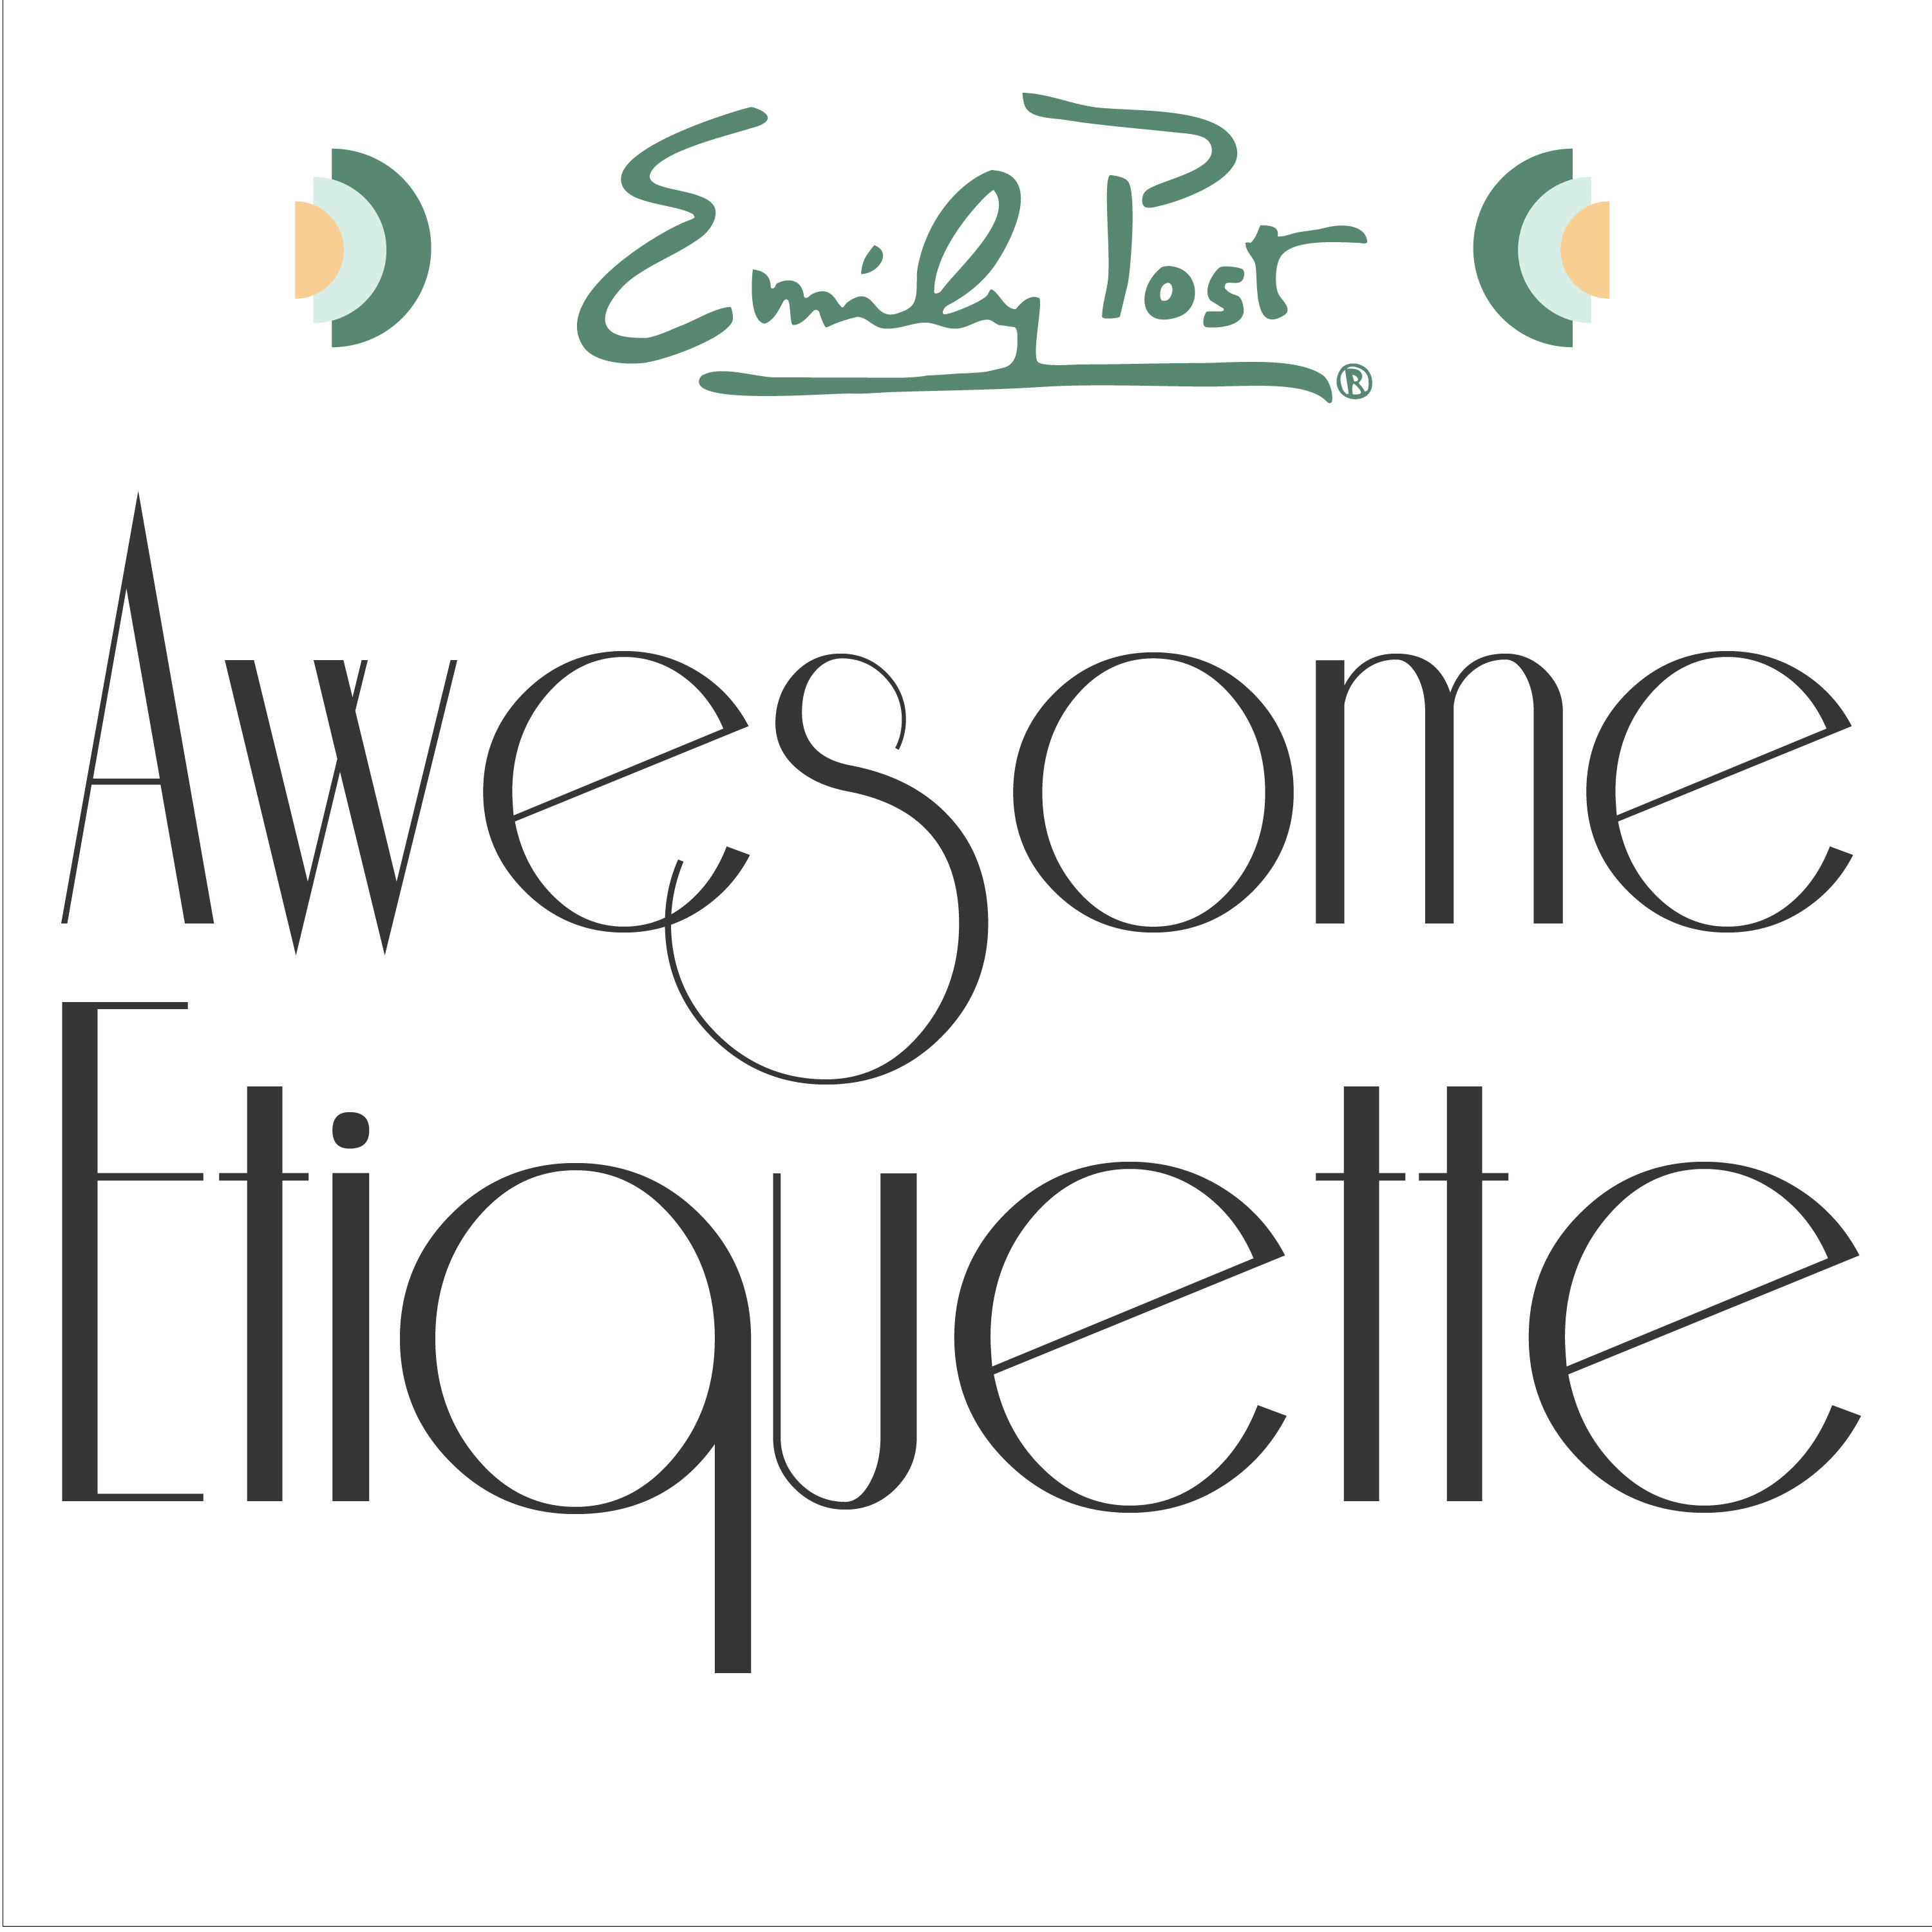 <![CDATA[Awesome Etiquette]]>